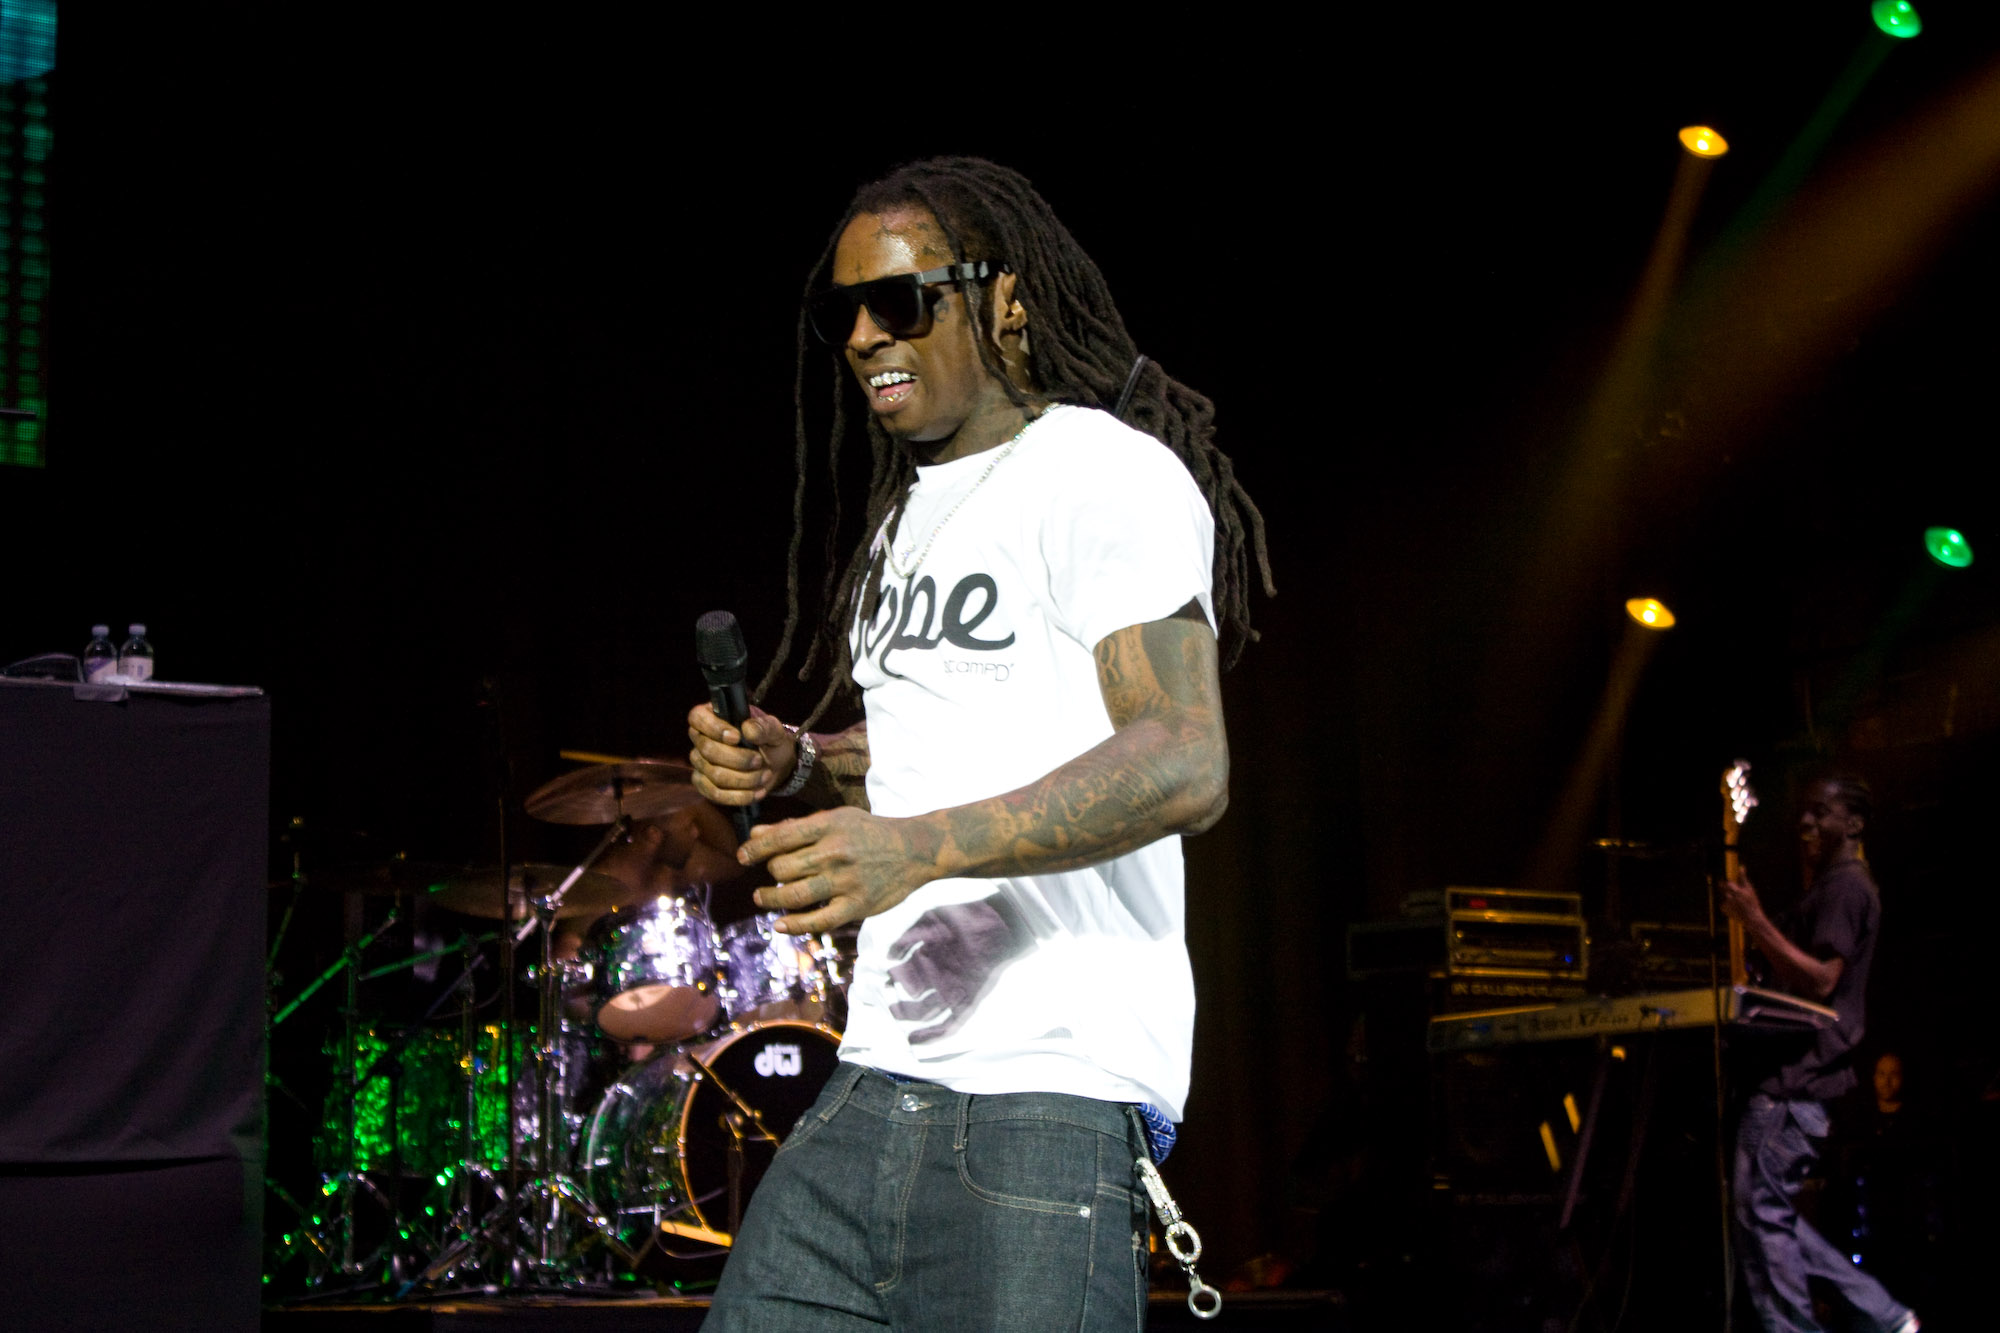 Lil-Wayne-live-at-HMV-Hammersmith-Apollo-London-49